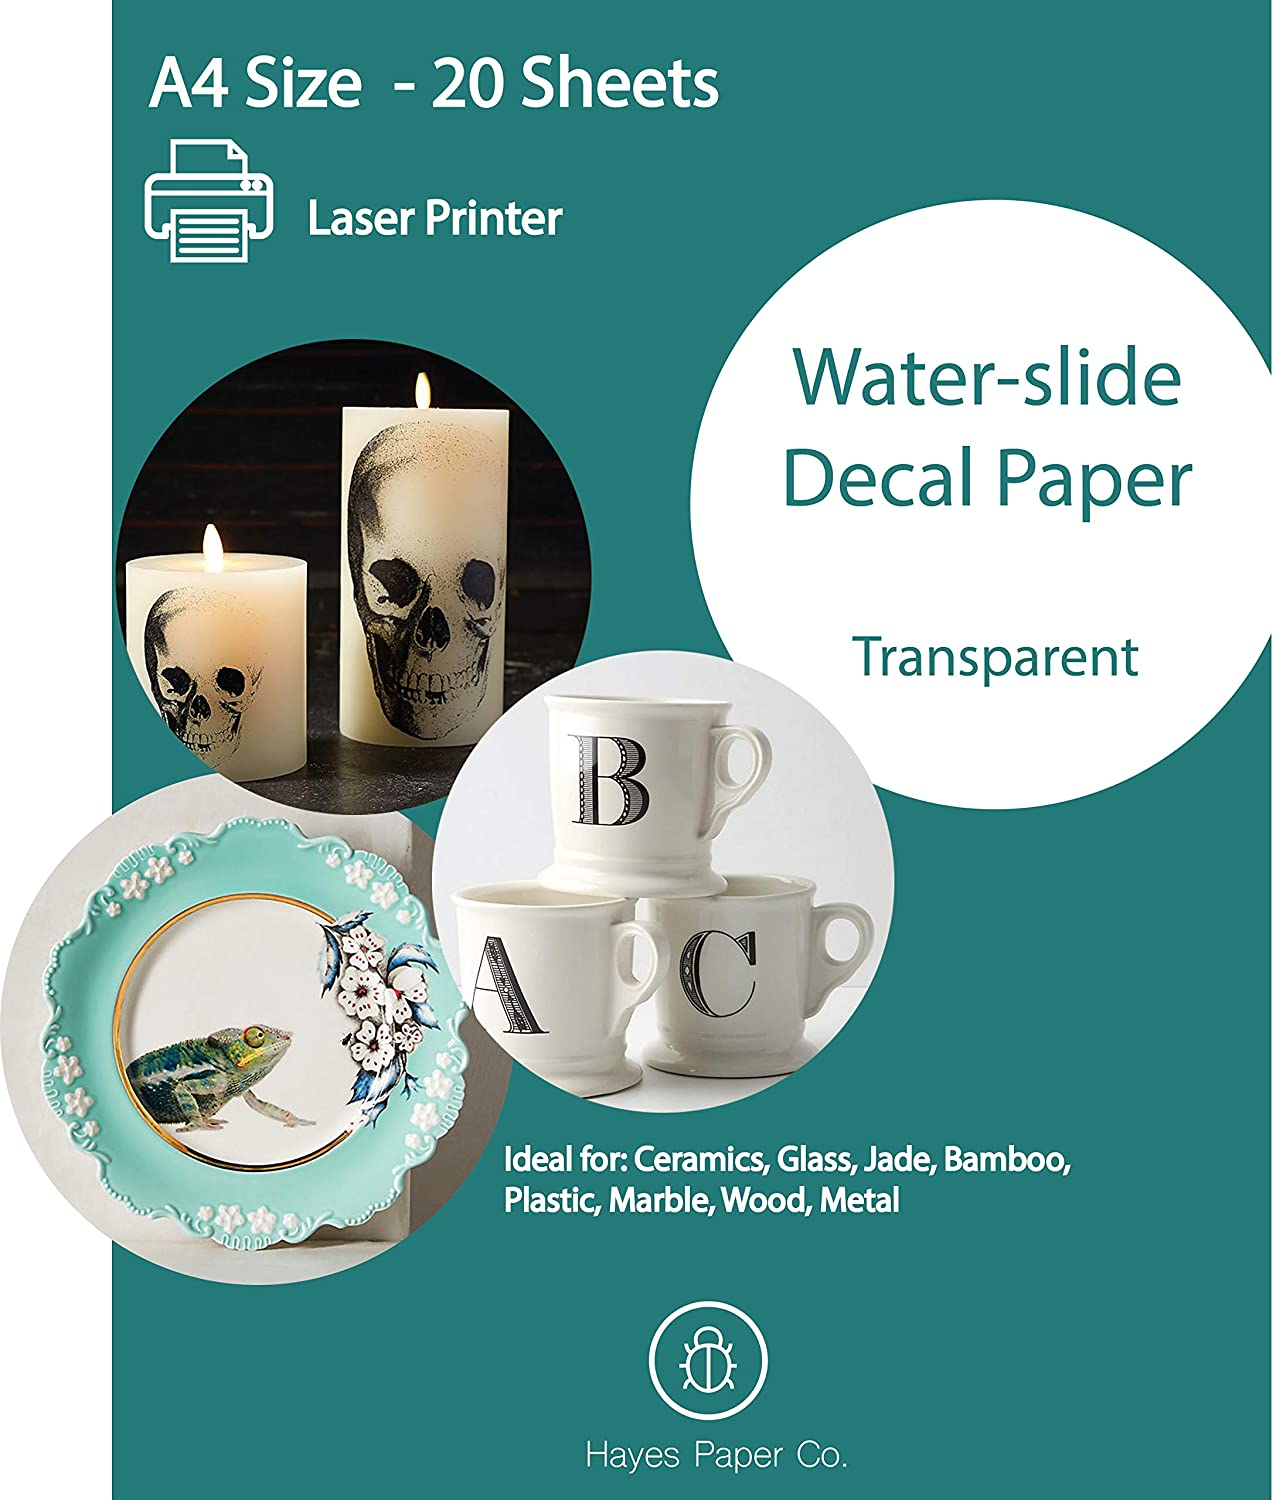 Hayes Paper, Waterslide Decal Paper LASER CLEAR 20 Sheets Premium Water-Slide Transfer Transparent Printable Water Slide Decals A4 Size